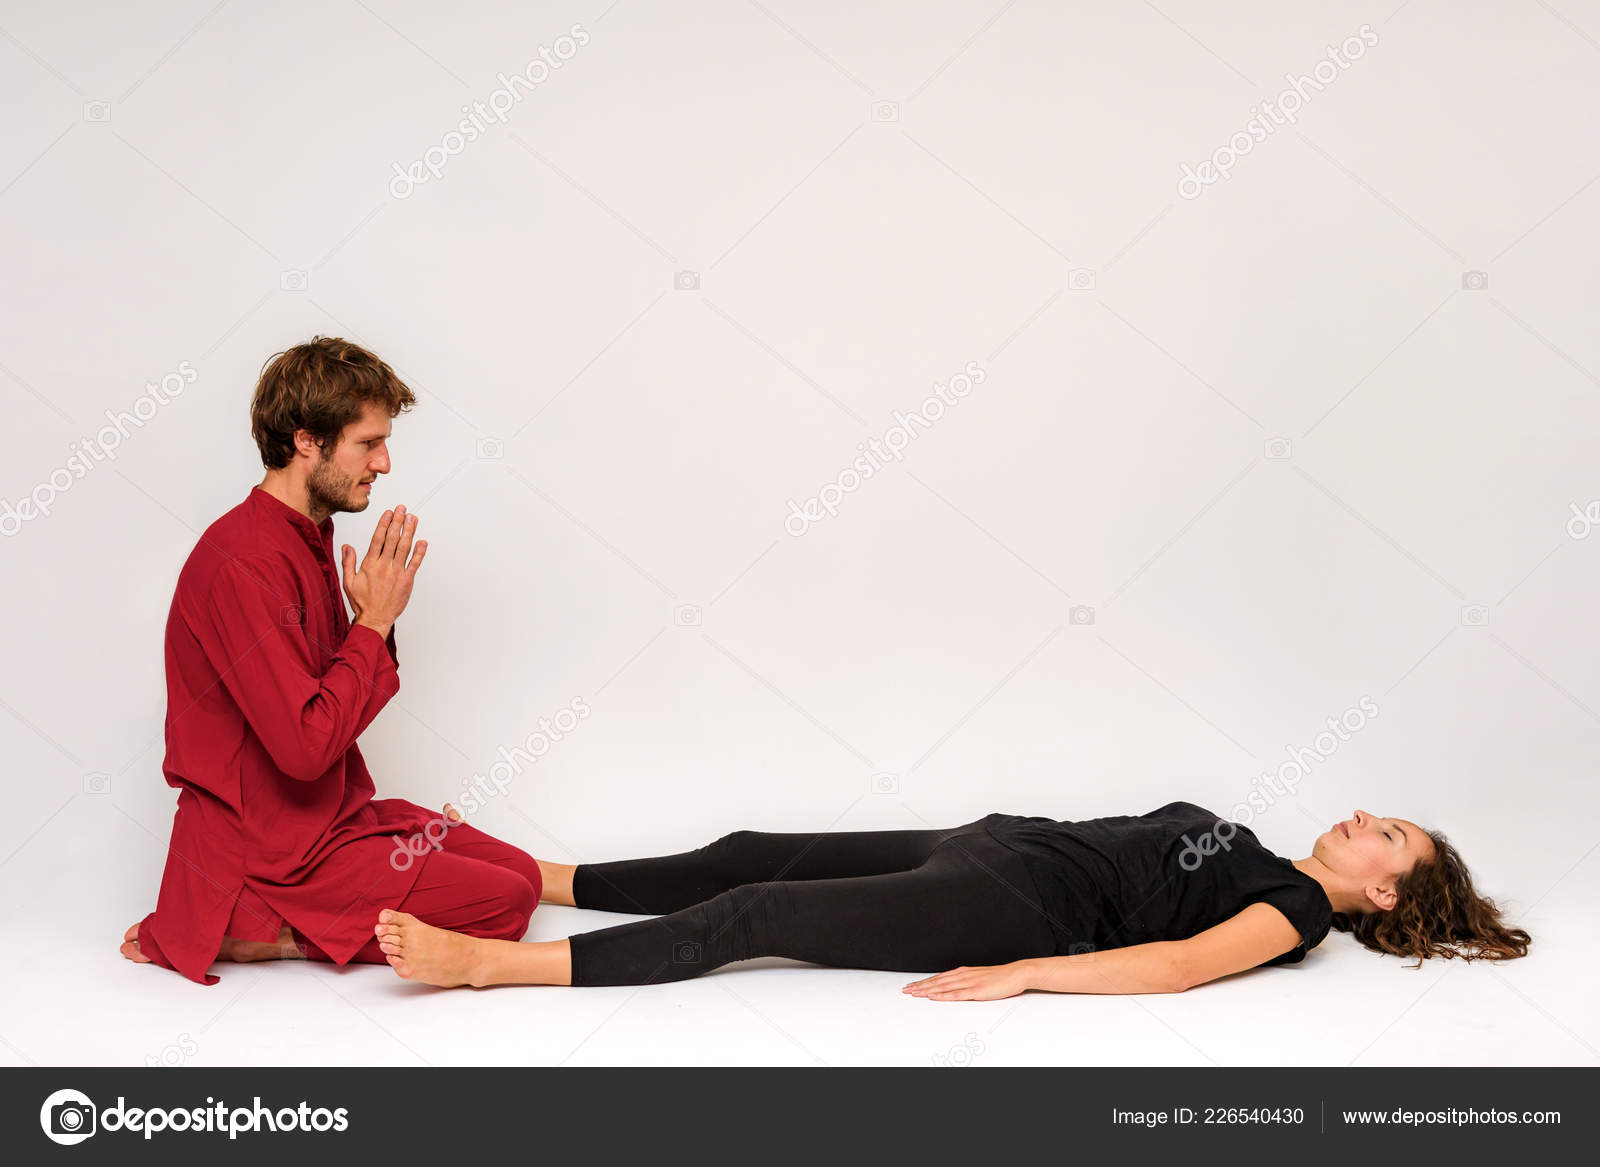 Photo of yoga poses on the floor for two stretching and relaxing on a white  background. The man stretches the woman right in front of the camera.